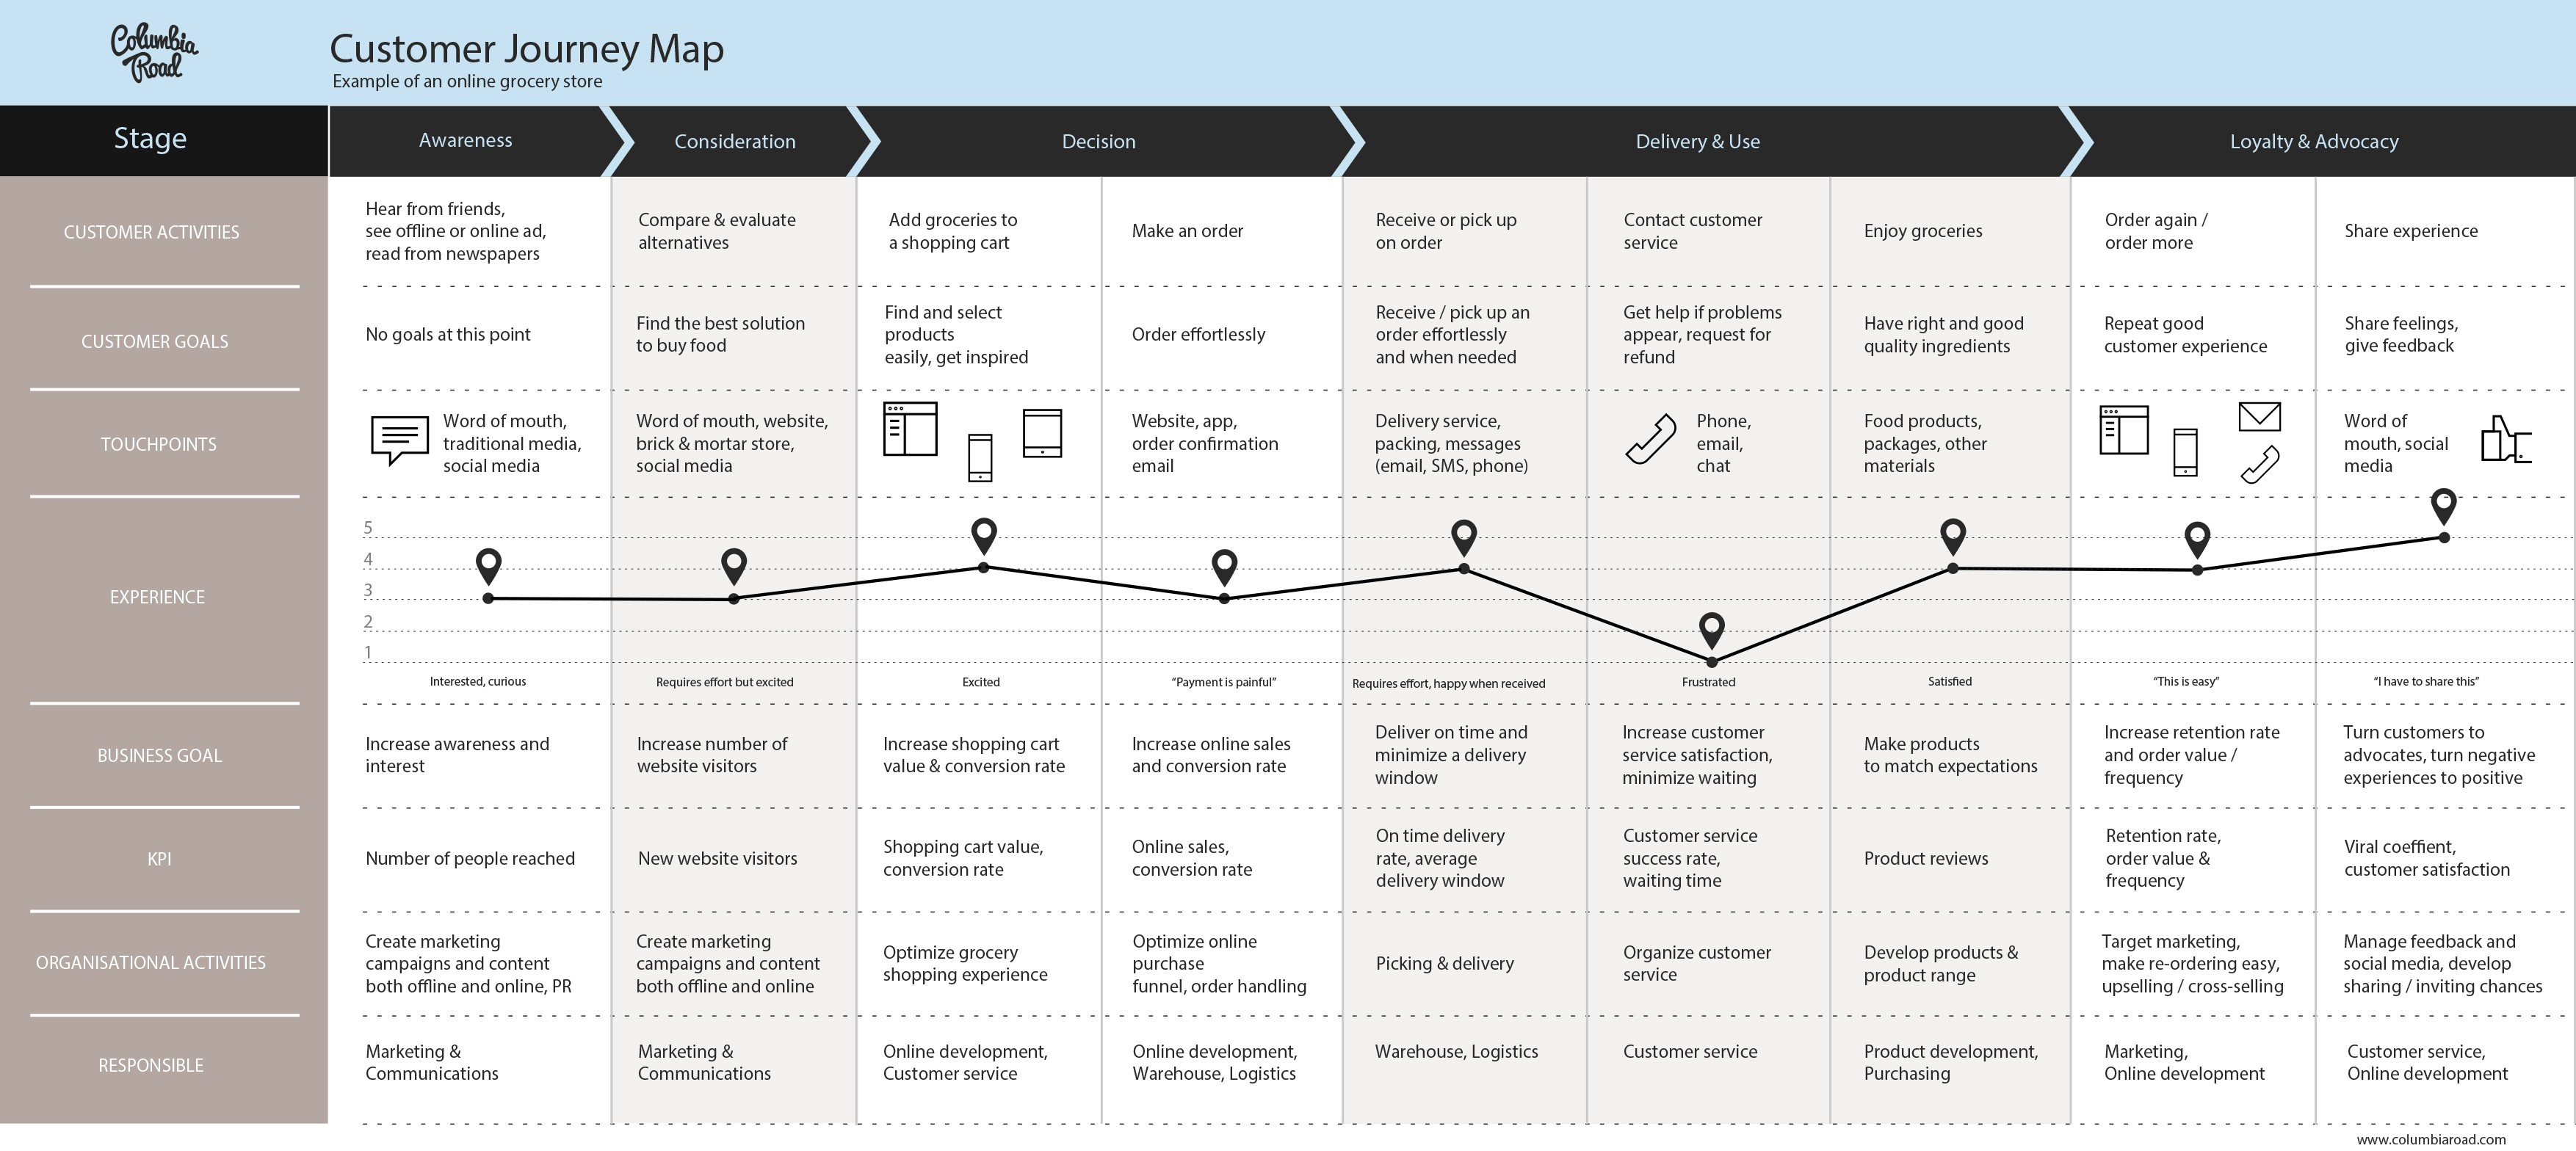 Customer Journey Map Template Free Download